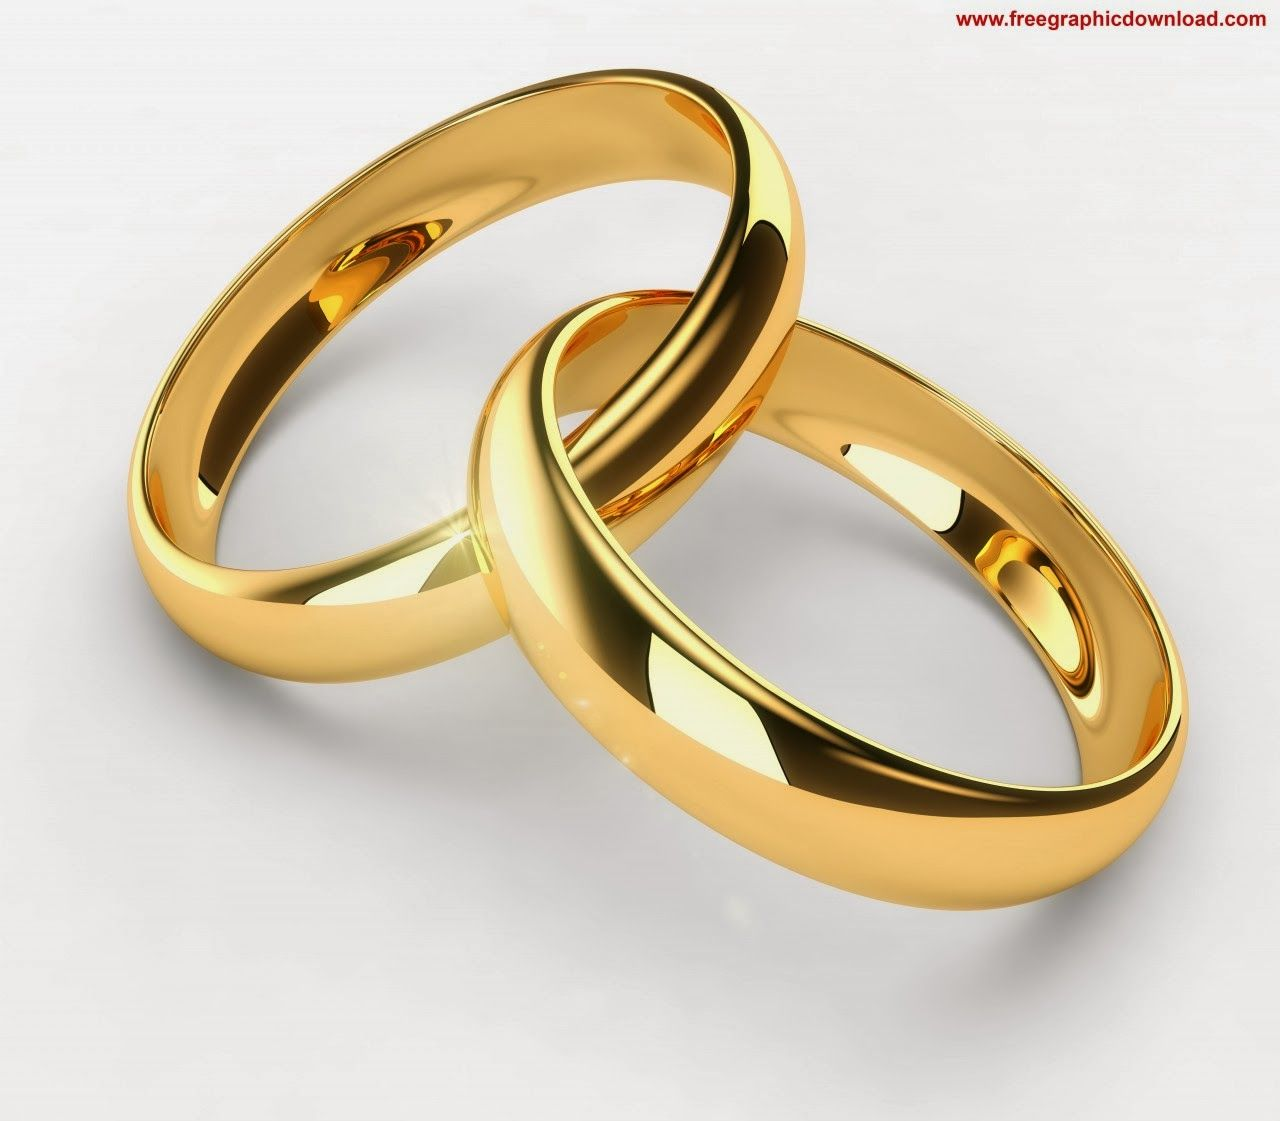 Image For Gold Wedding Rings Wallpaper Free Hd Places To Visit